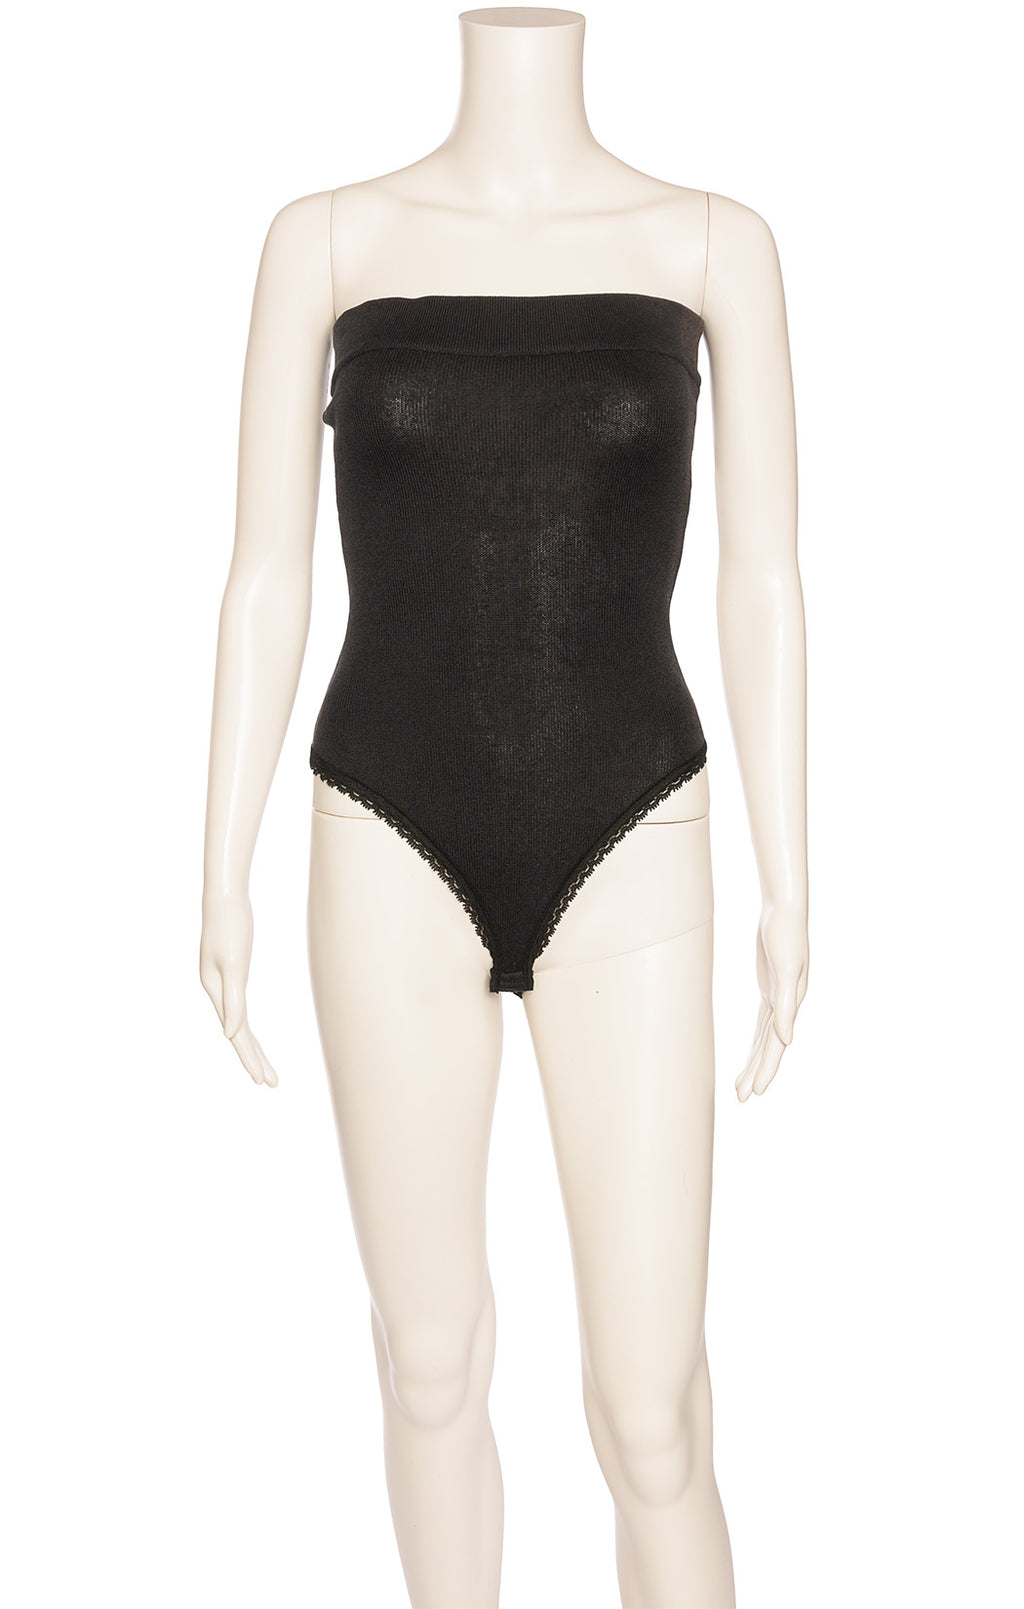 Front view of DONNA KARAN Bodysuit Size: Small